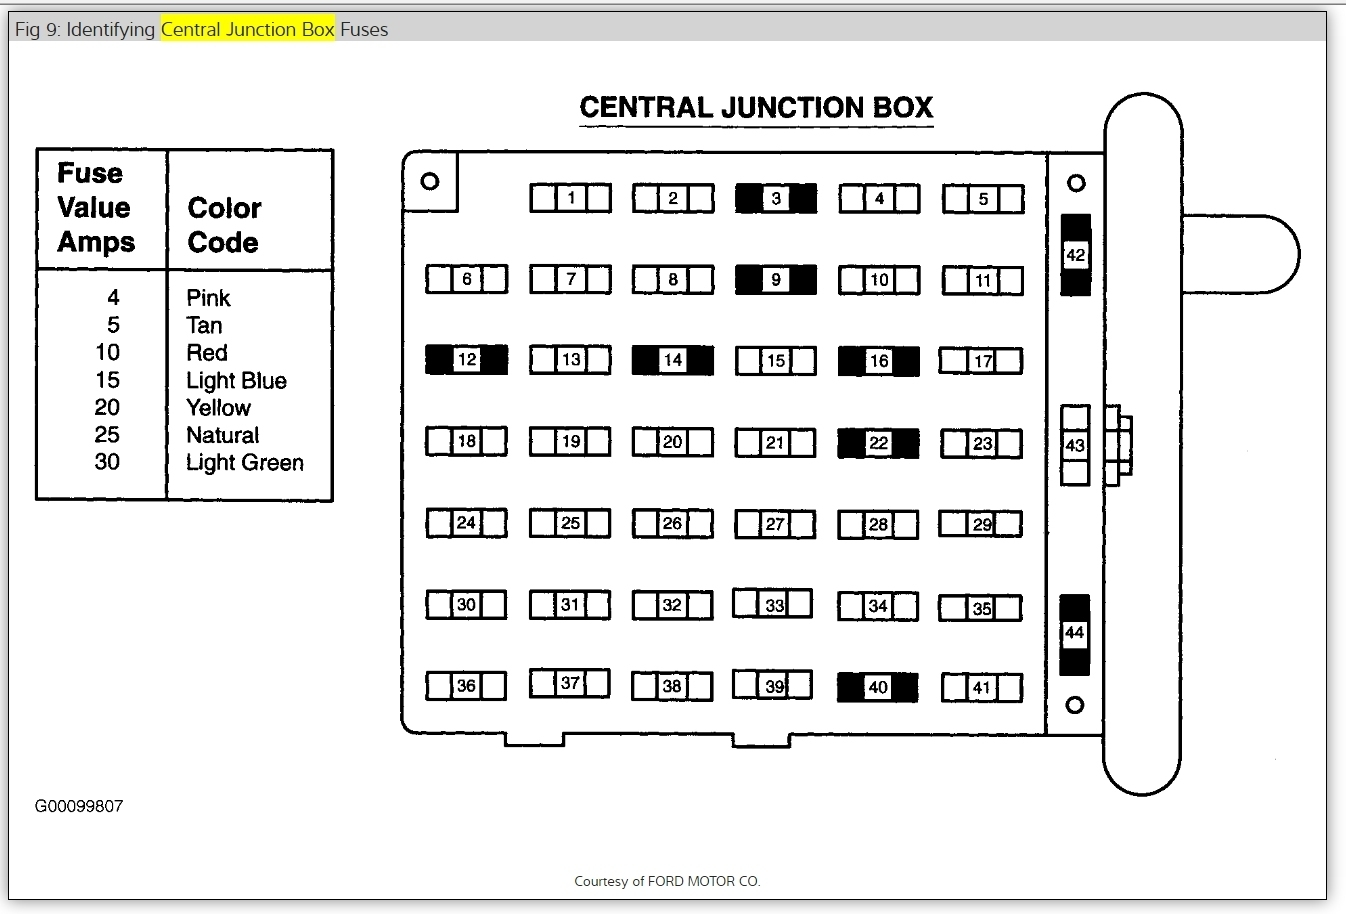 original 1999 ford mustang fuse box layout electrical problem 1999 ford 1999 ford mustang fuse box diagram at bakdesigns.co